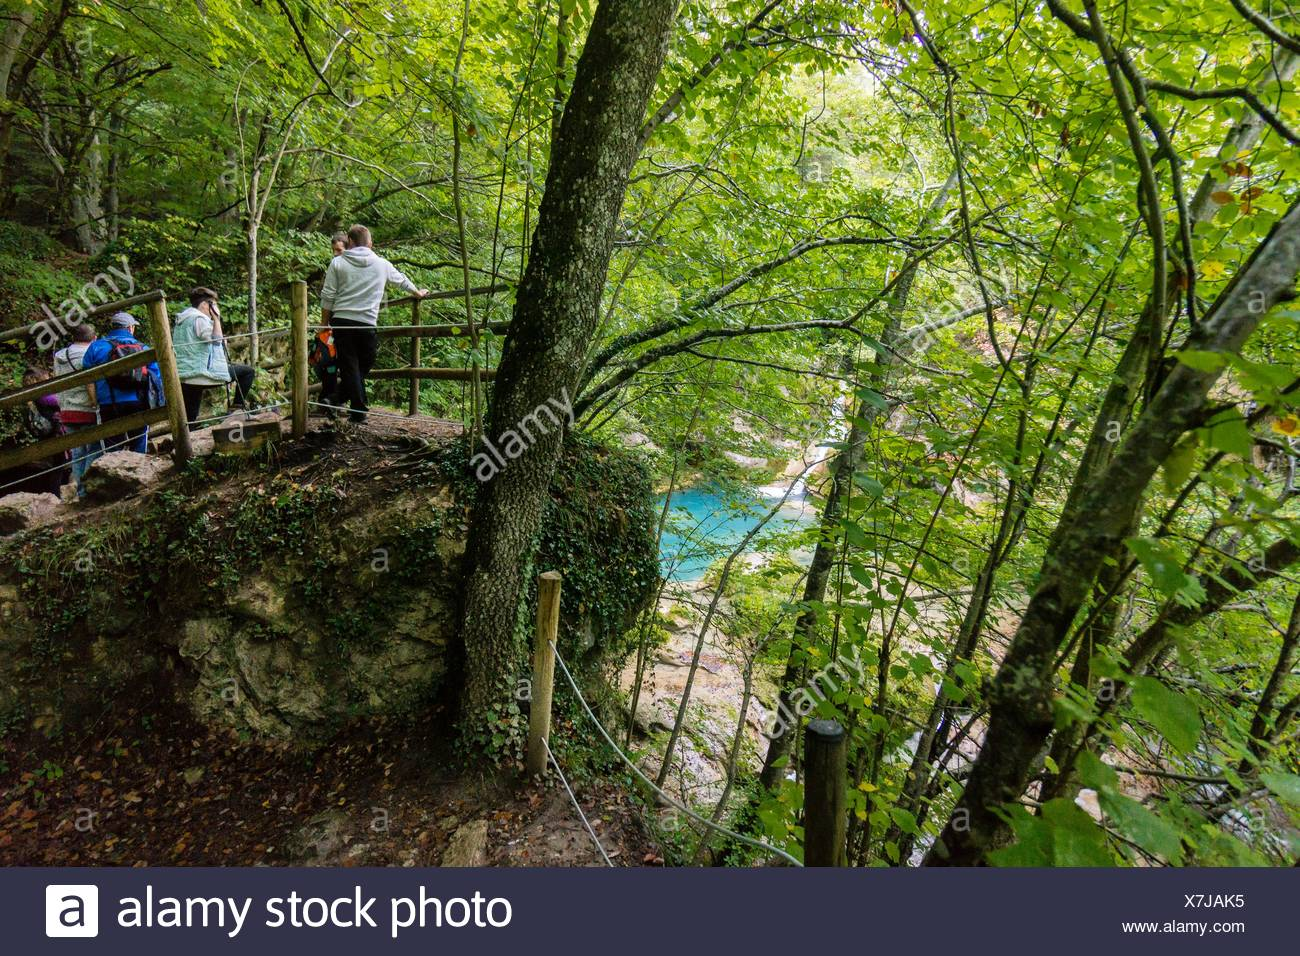 Forest by the sources of Urederra river, Urbasa-Andia natural park, Navarre, Spain - Stock Image